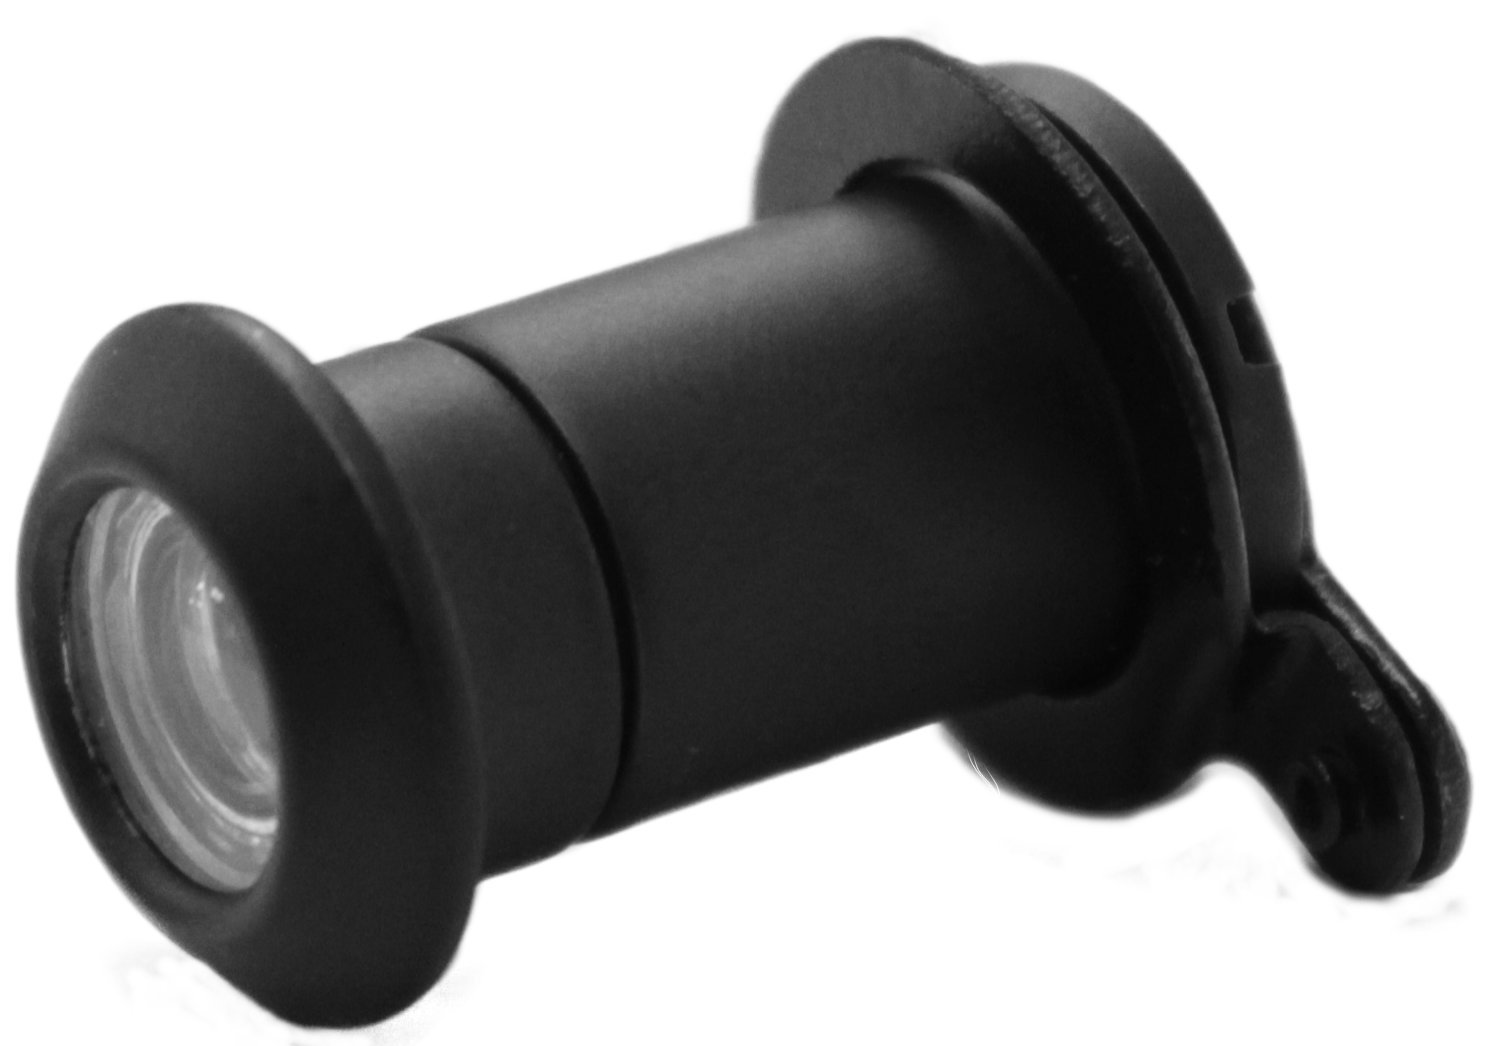 uPVC Door Viewer + FREE Privacy Cover - Black Spyhole - 160 Degree Peephole - Designed for Door Thicknesses Between 20-35mm UAP